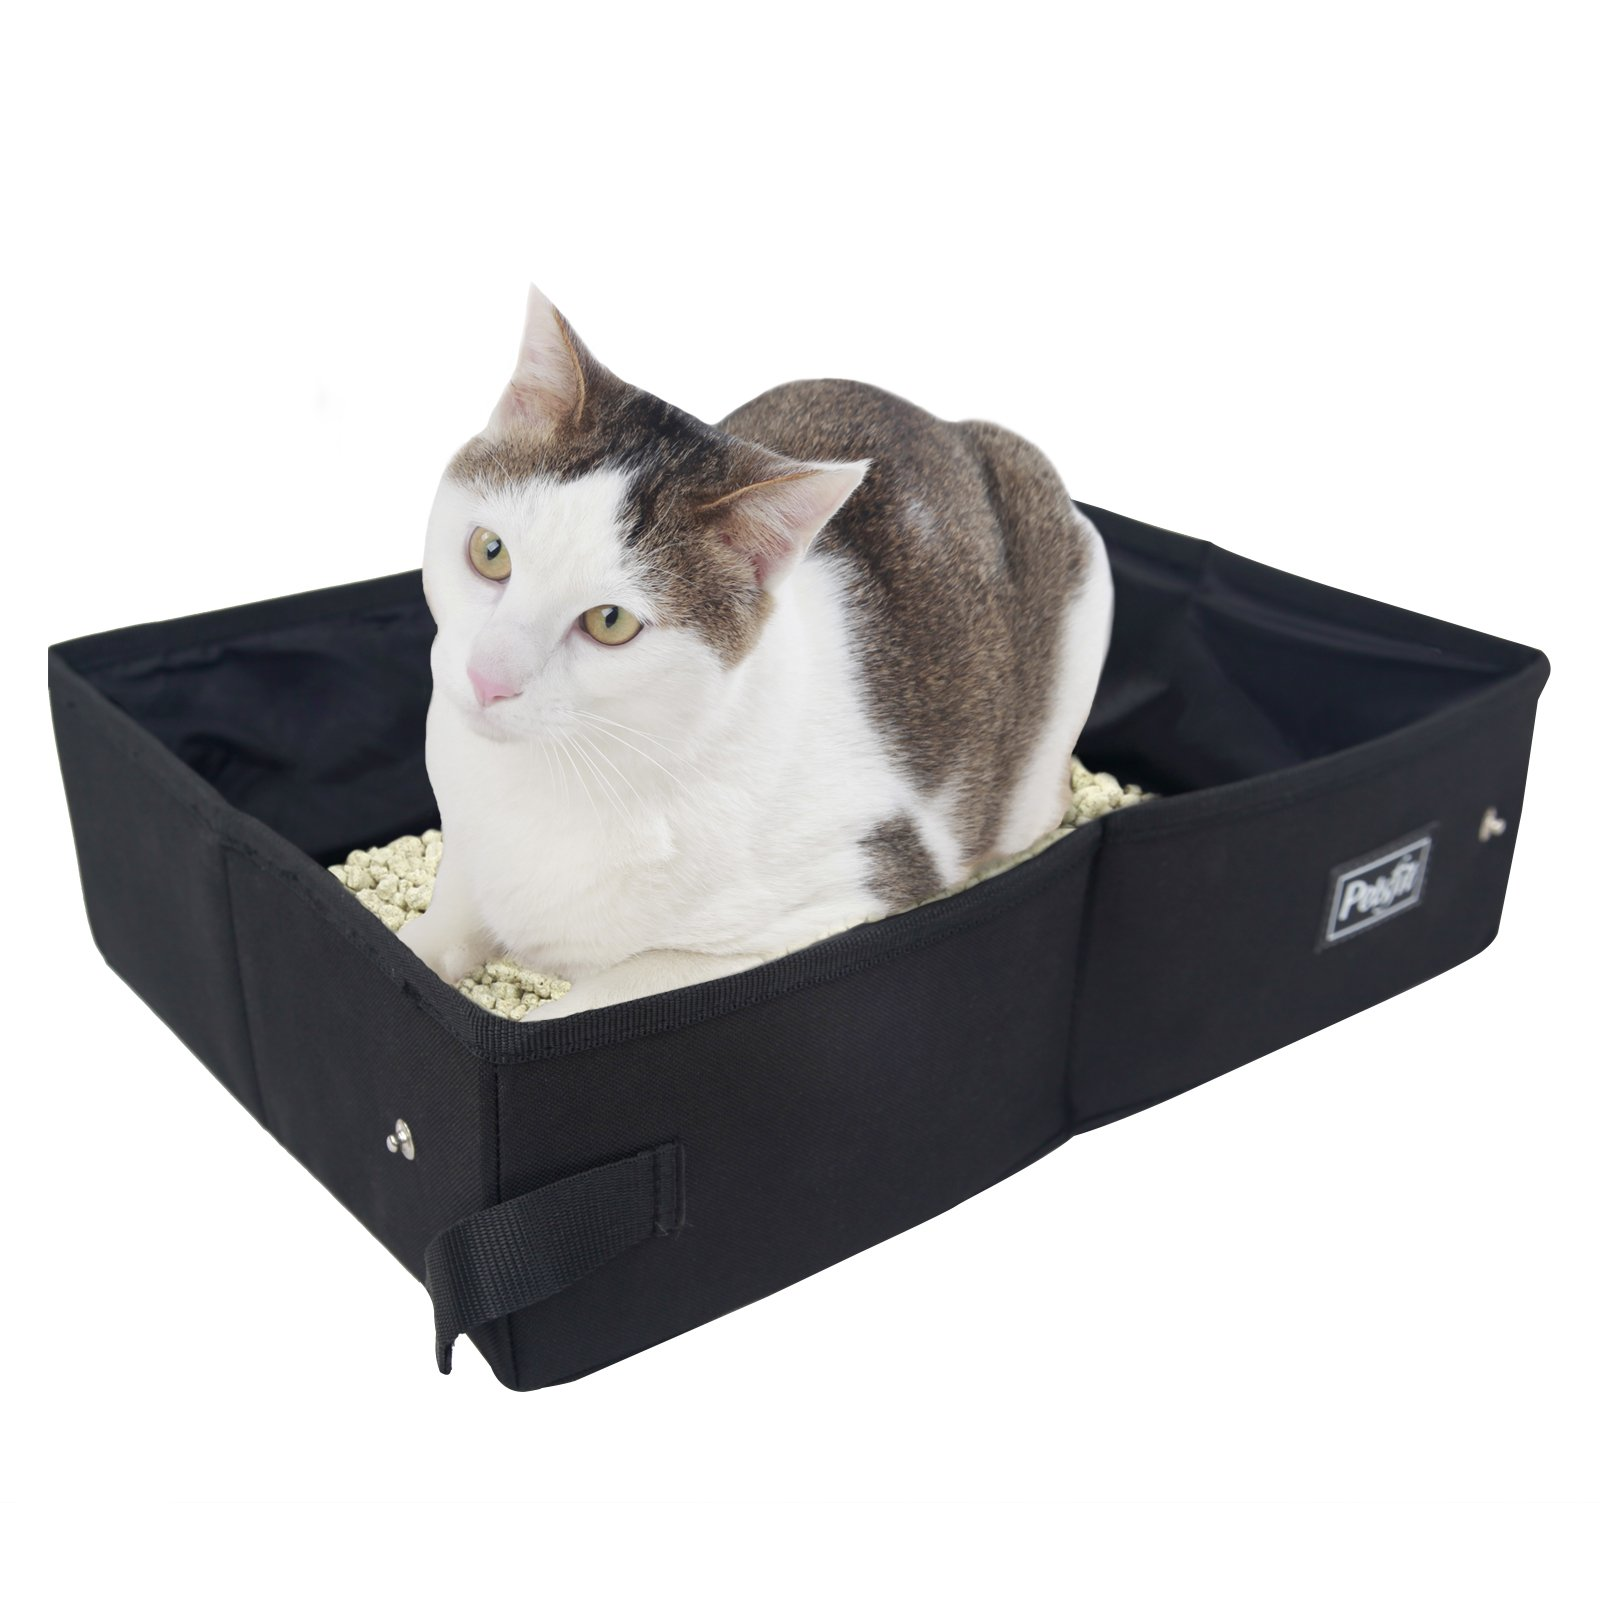 """Petsfit Fabric Portable/Foldable Cat Litter Box/Pan for Travel Used Light Weight 15.7"""" x 12"""" x 4.7"""", Black"""